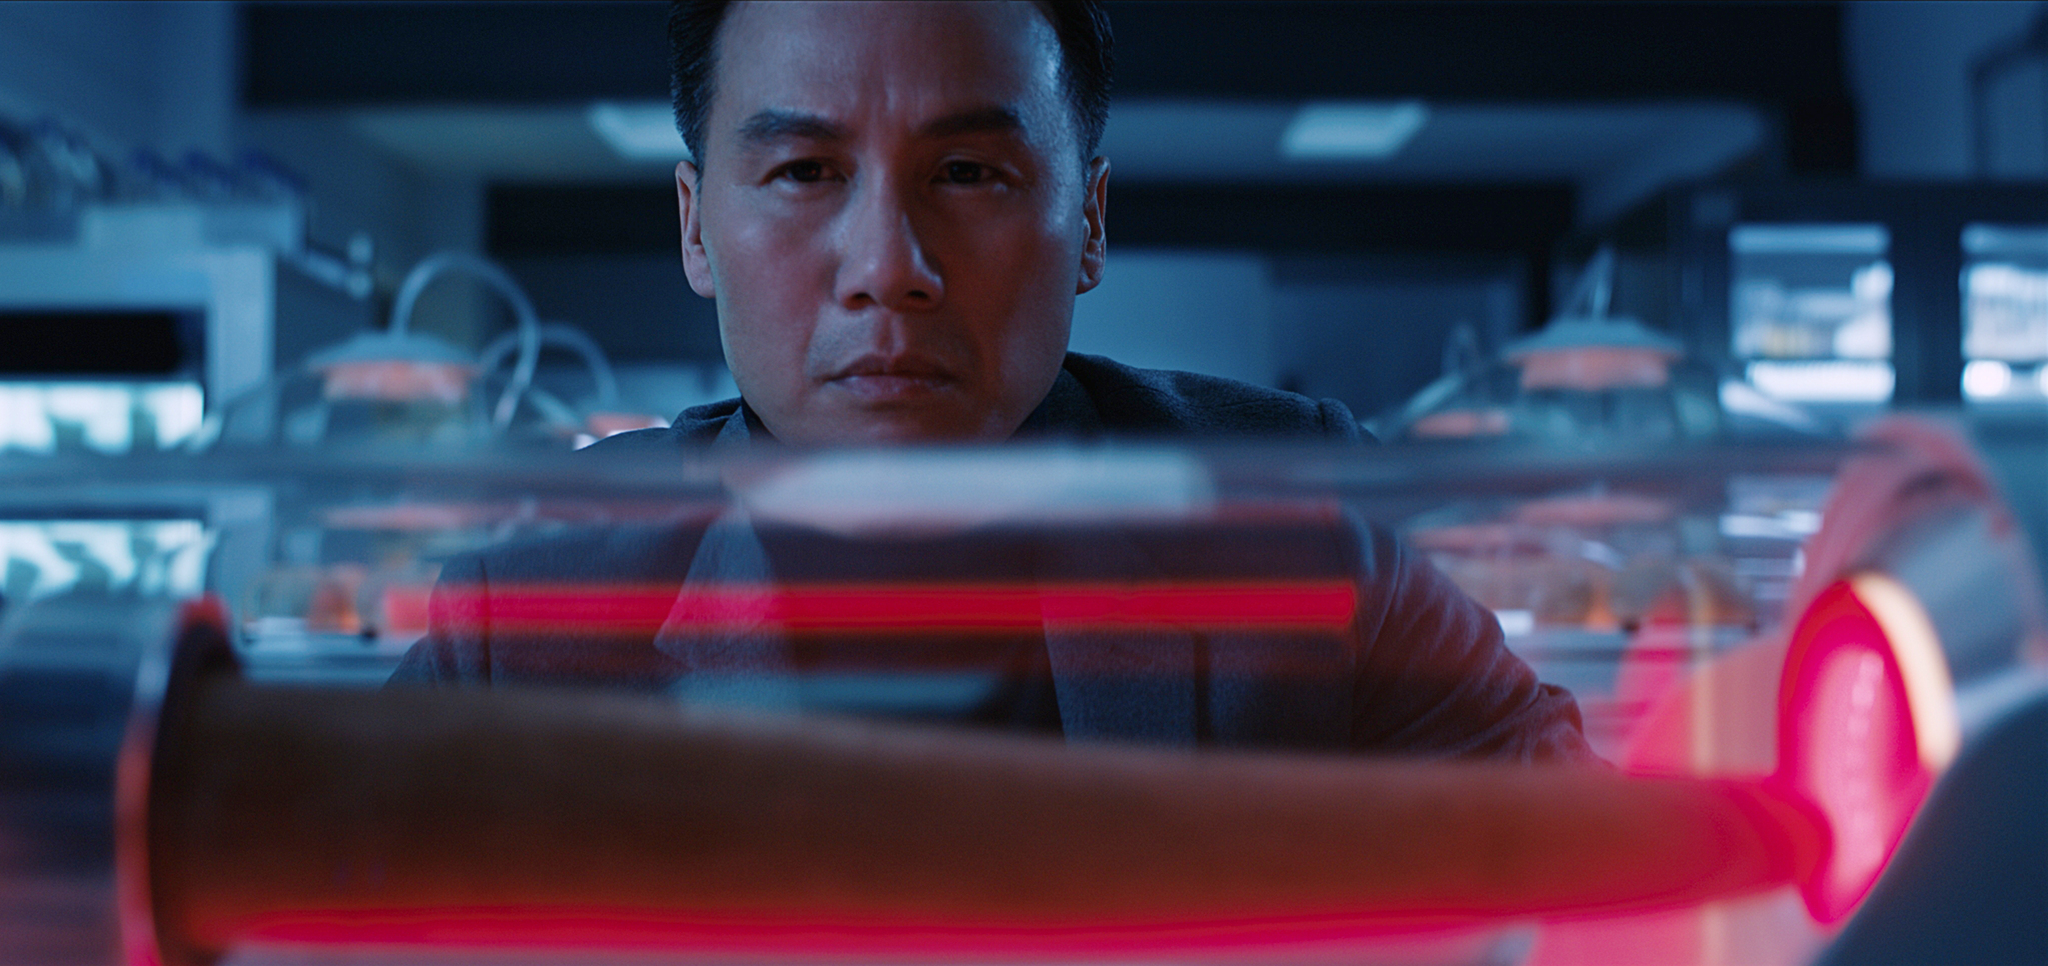 BD Wong in Jurassic World: Fallen Kingdom (2018)